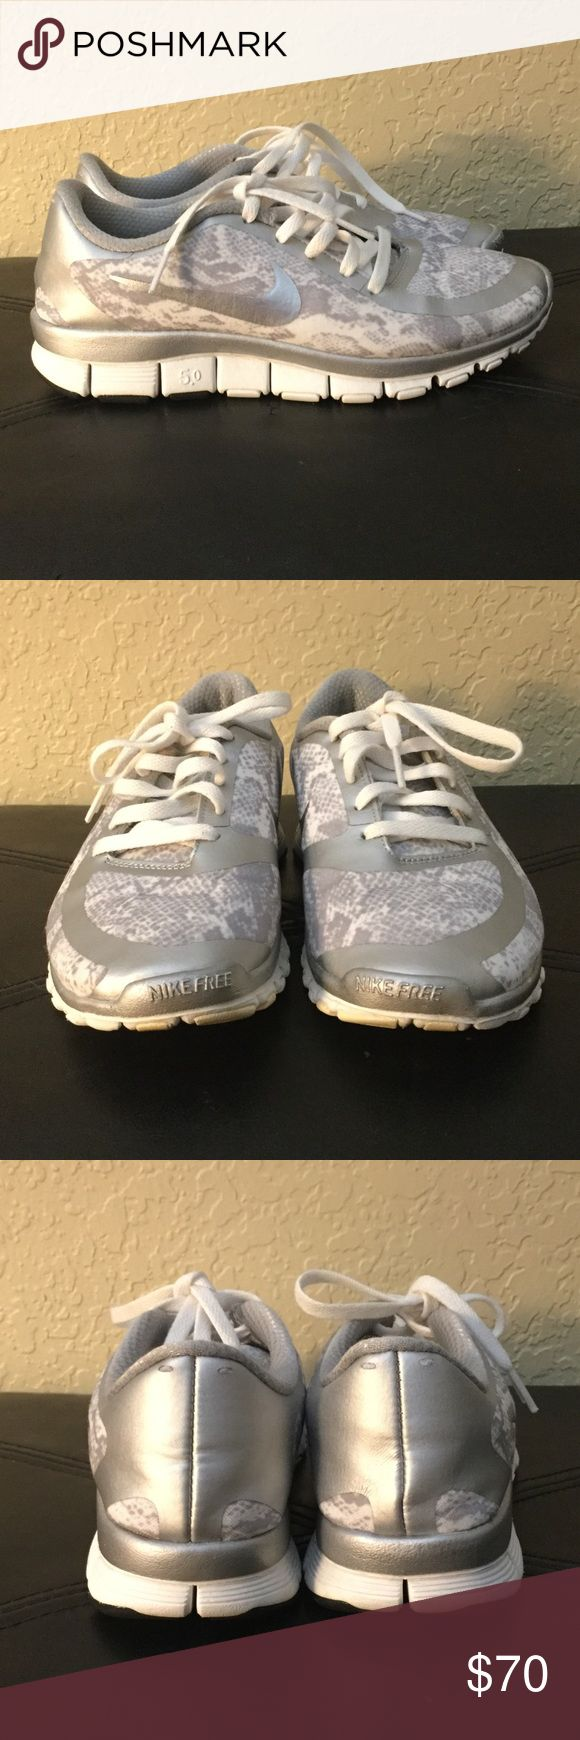 Silver and white nike sneakers Good used condition, size 6.5 runs small.         🚭Smoke/pet free home ❌no trades 💵💰negotiable 📦bundle✅ Nike Shoes Sneakers